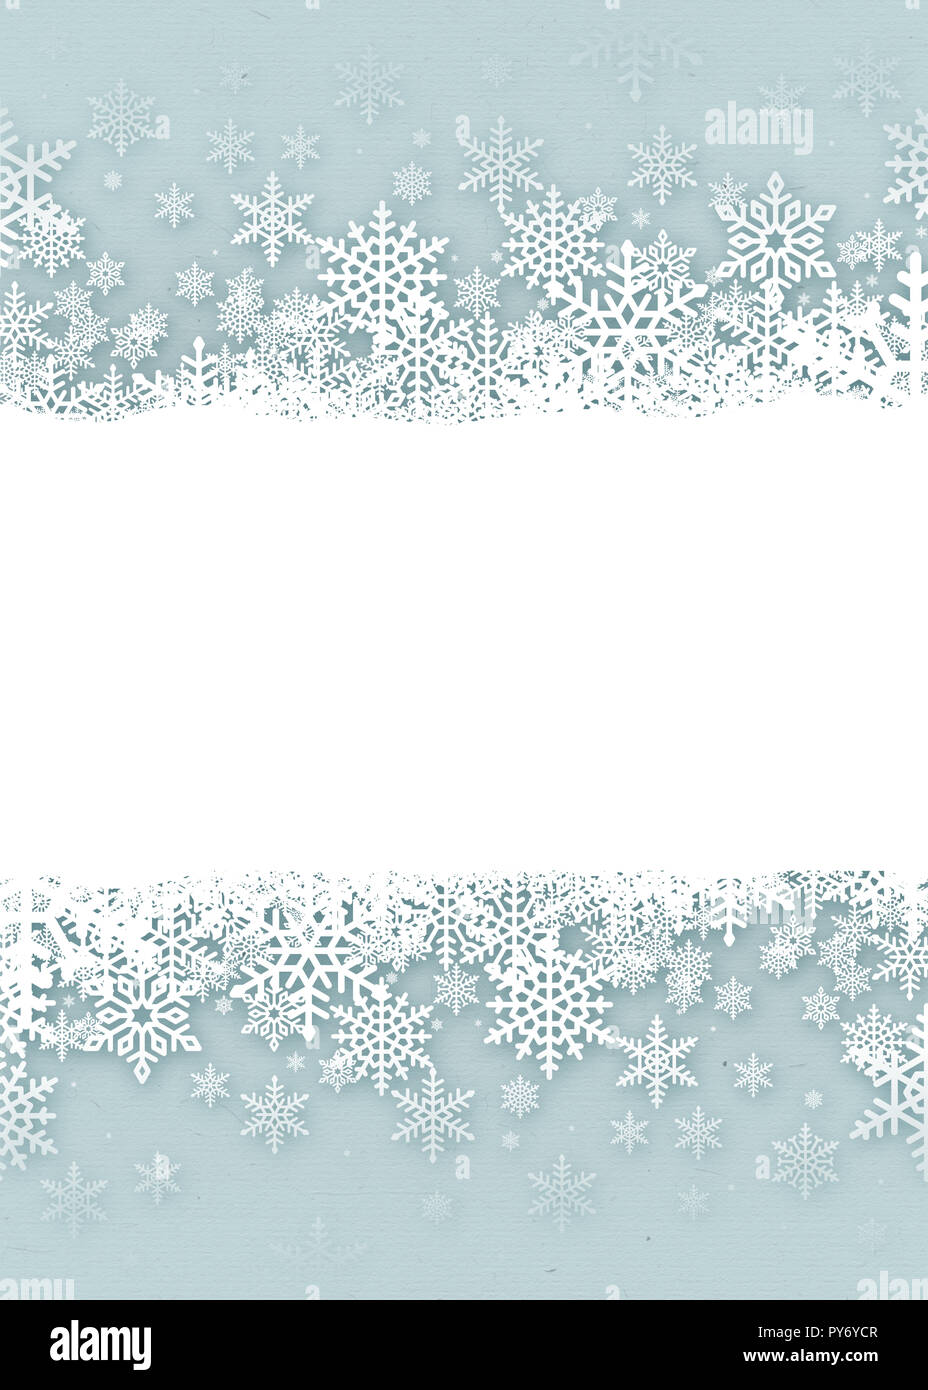 christmas and new year greetings card background wallpaper